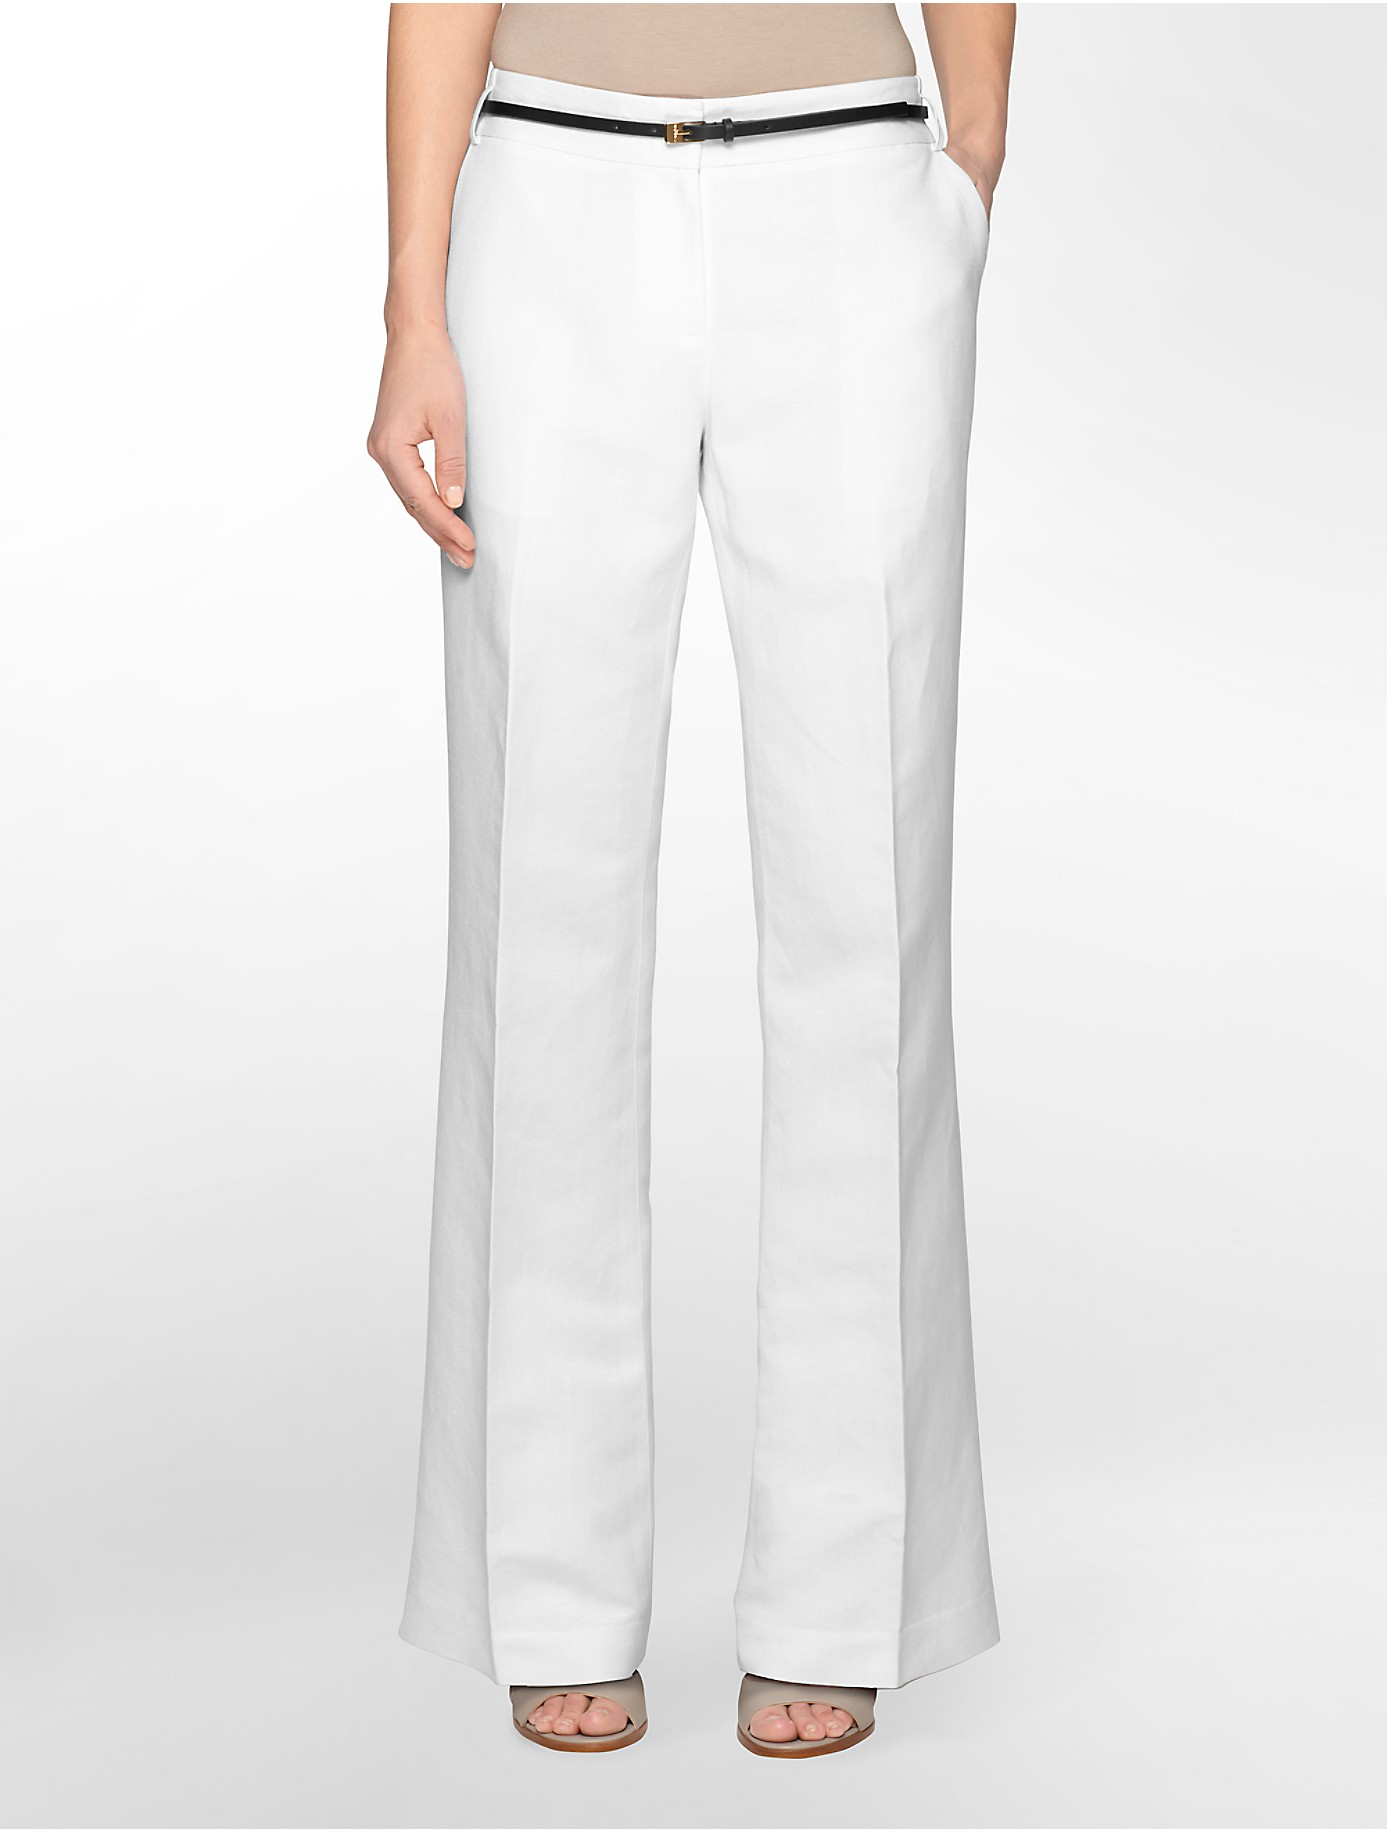 Collection White Suit Pants Pictures - The Fashions Of Paradise